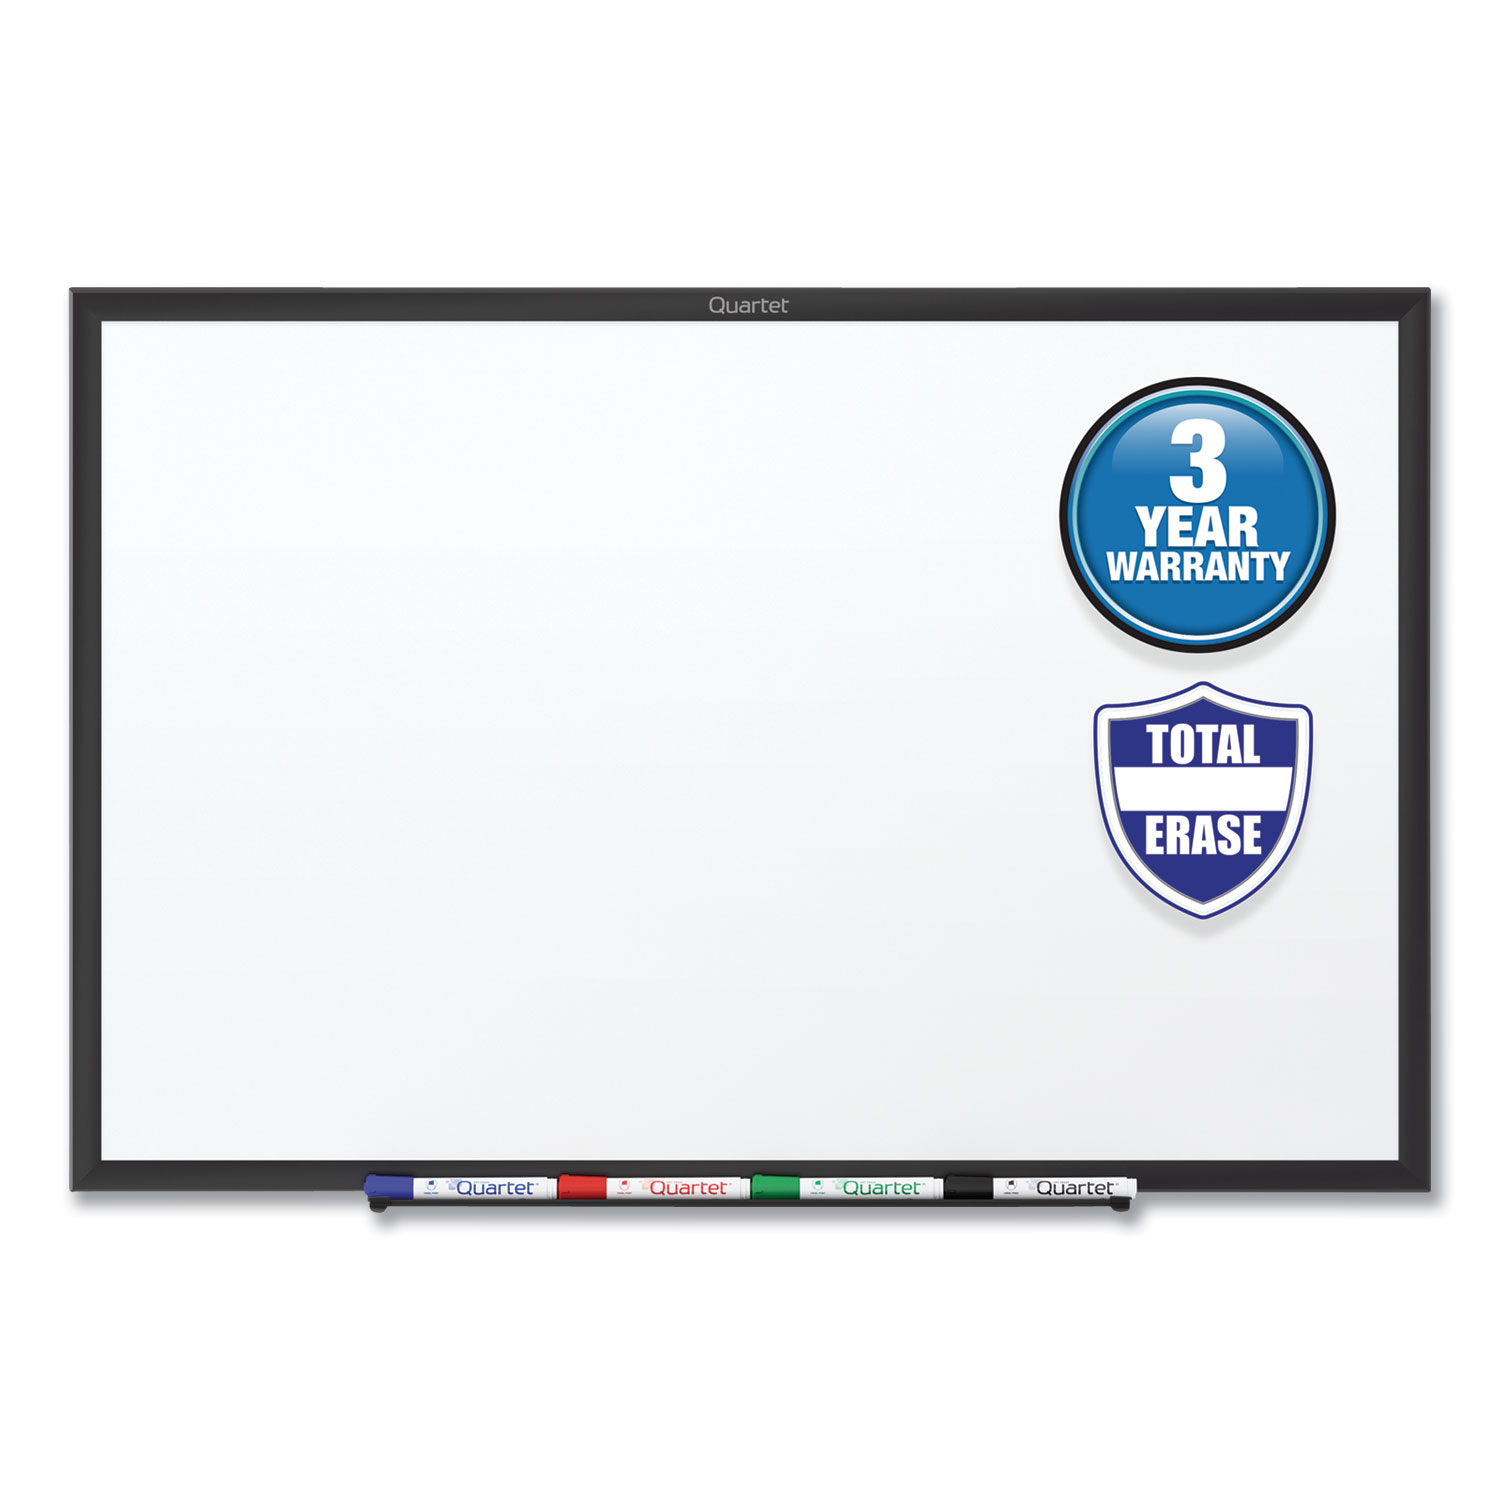 Picture of Classic Series Total Erase Dry Erase Board, 60 x 36, White Surface, Black Frame